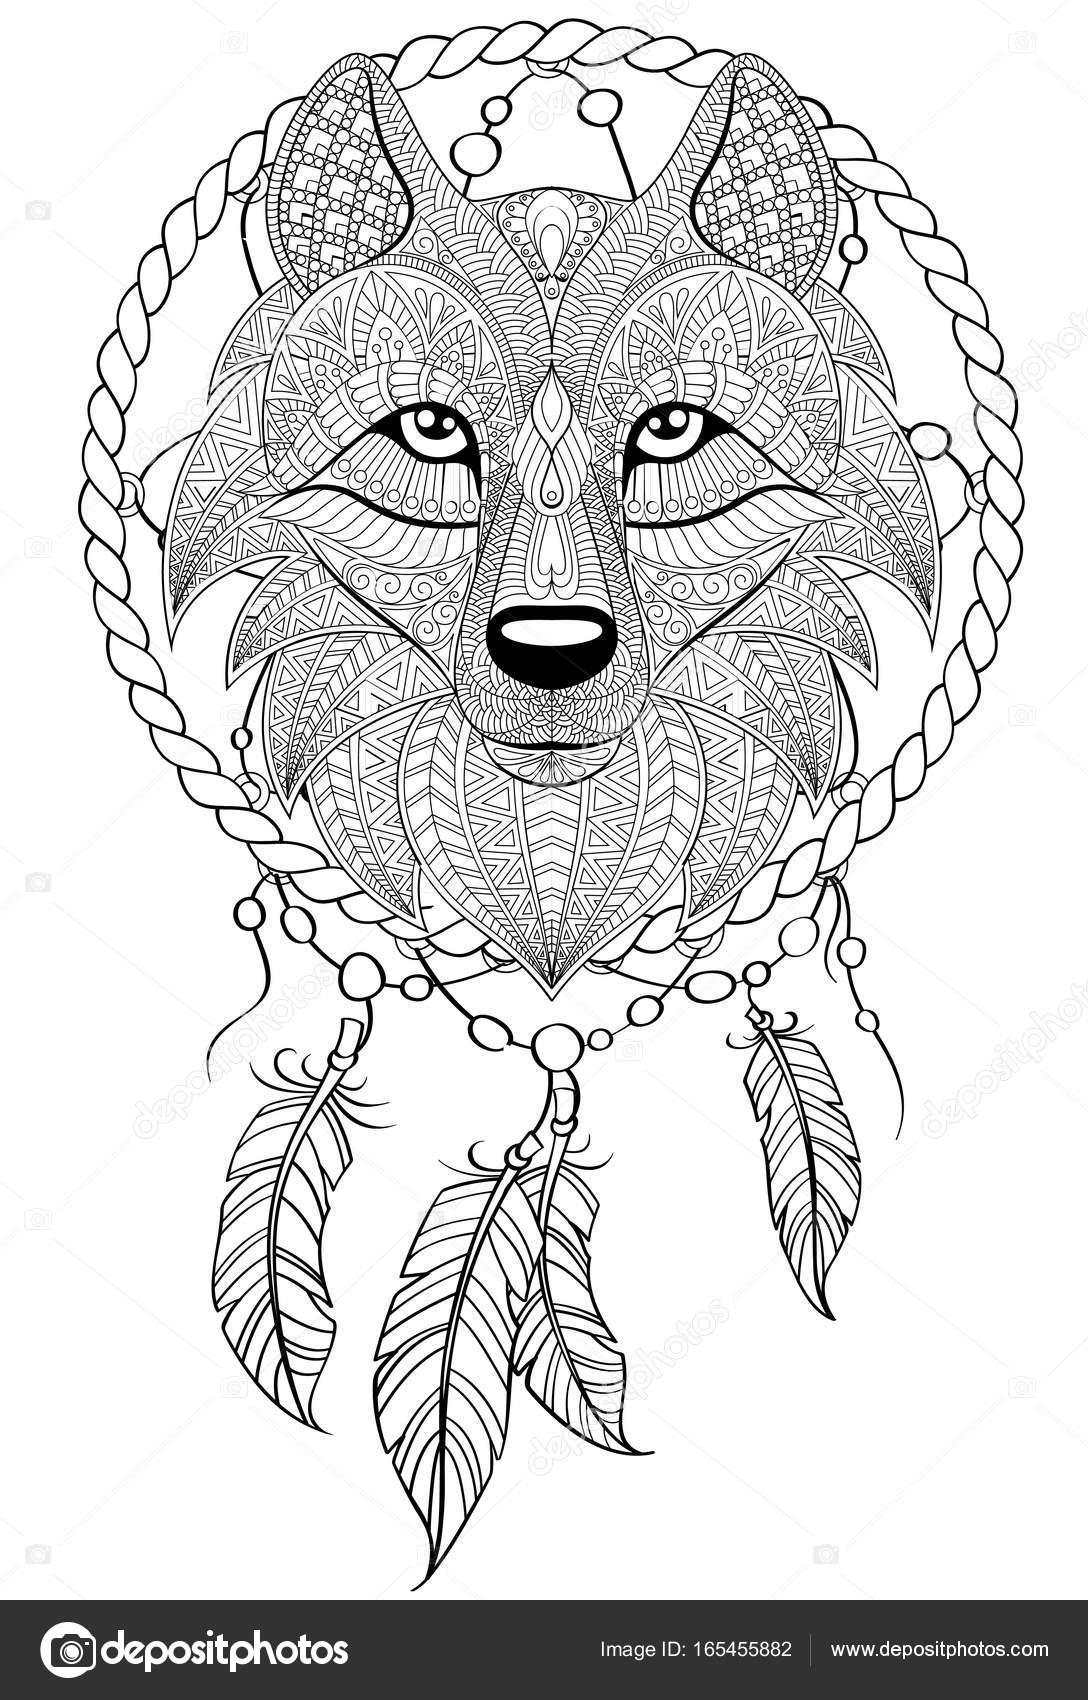 Wolf Dreamcatcher Drawing at GetDrawings Free for